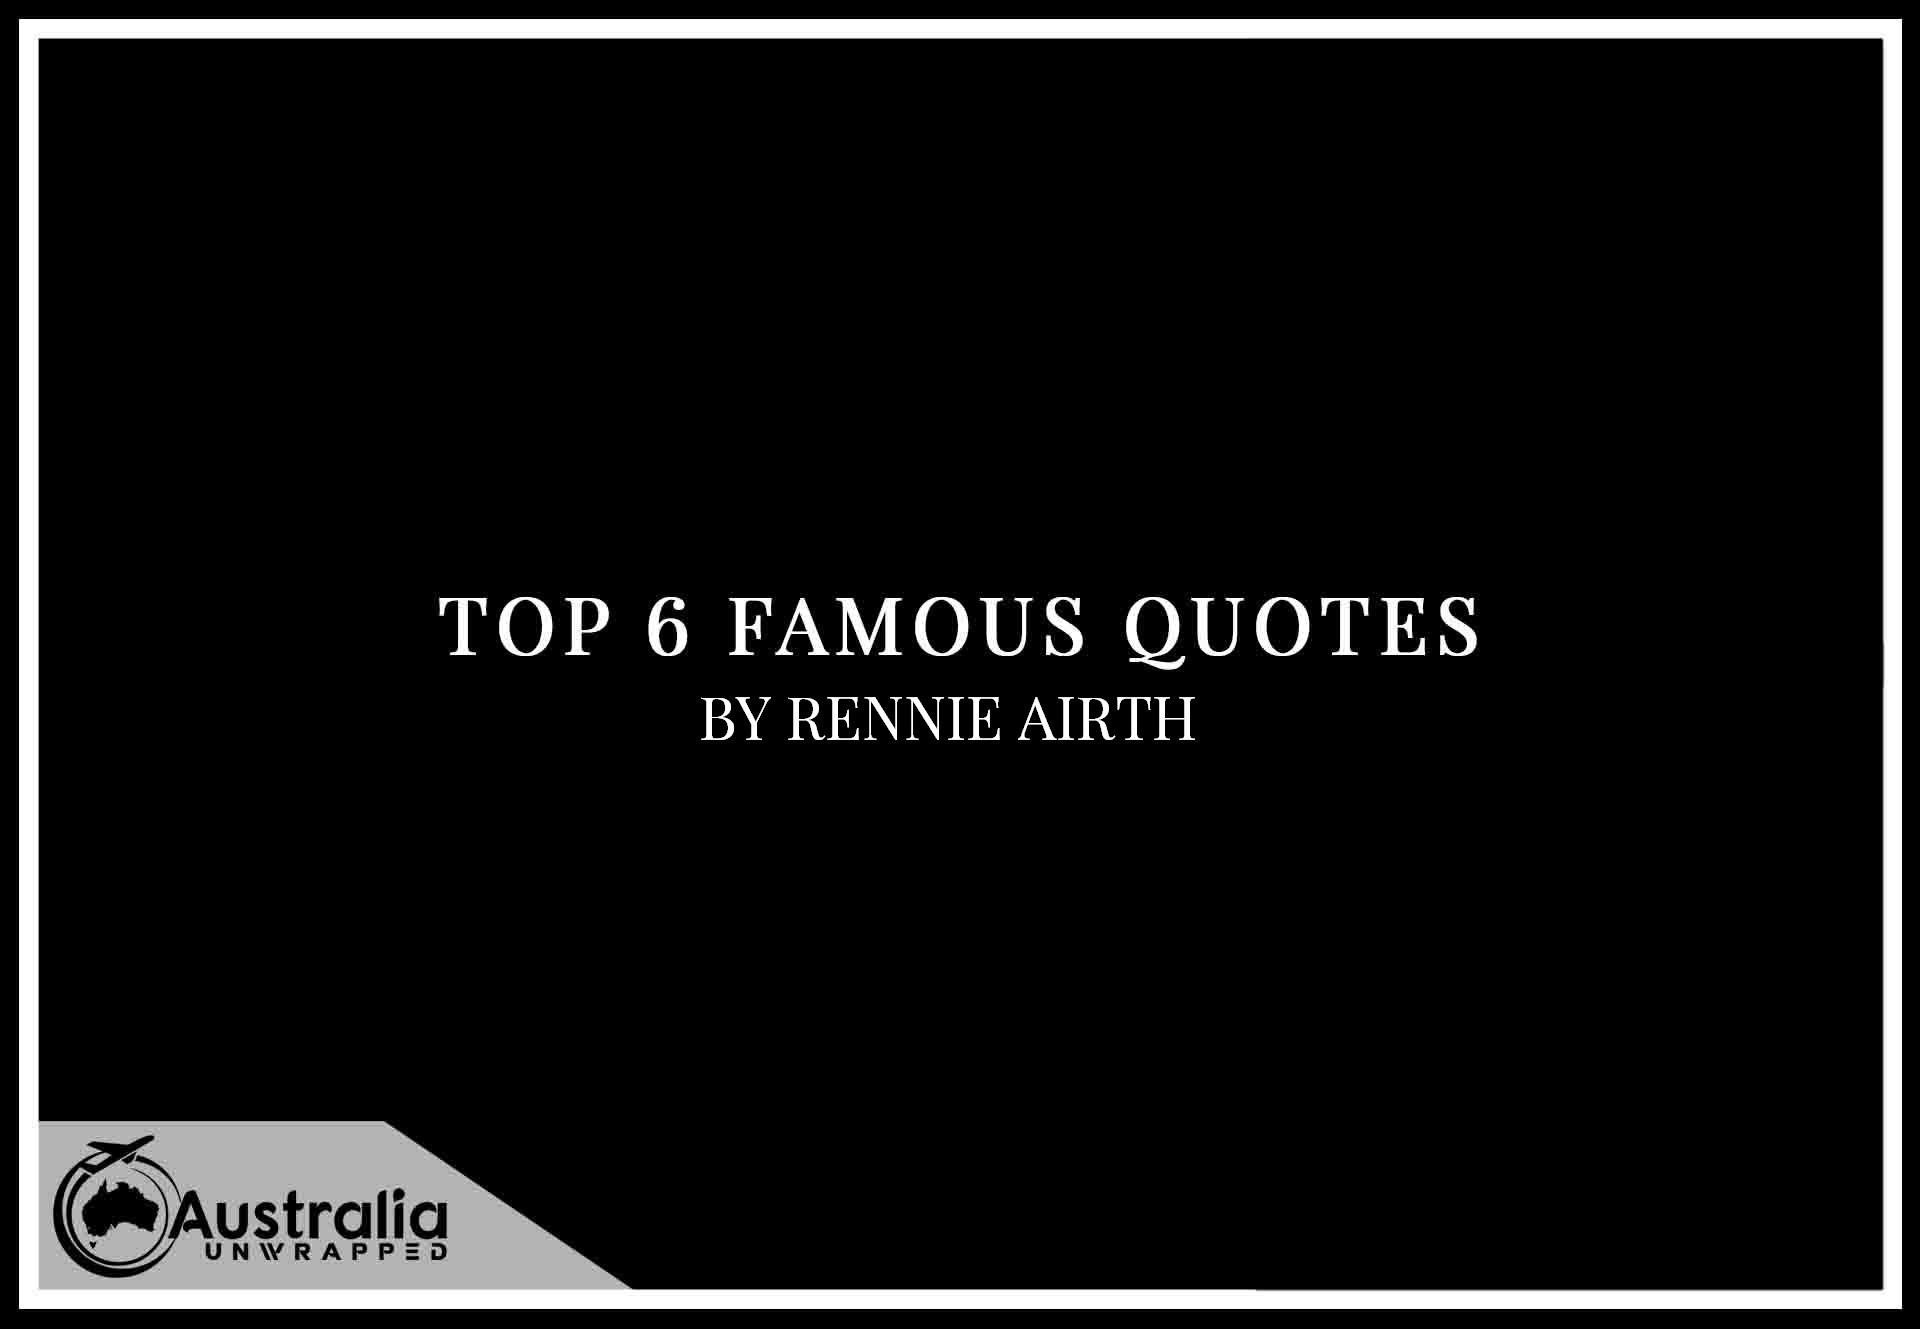 Top 6 Famous Quotes by Author Rennie Airth